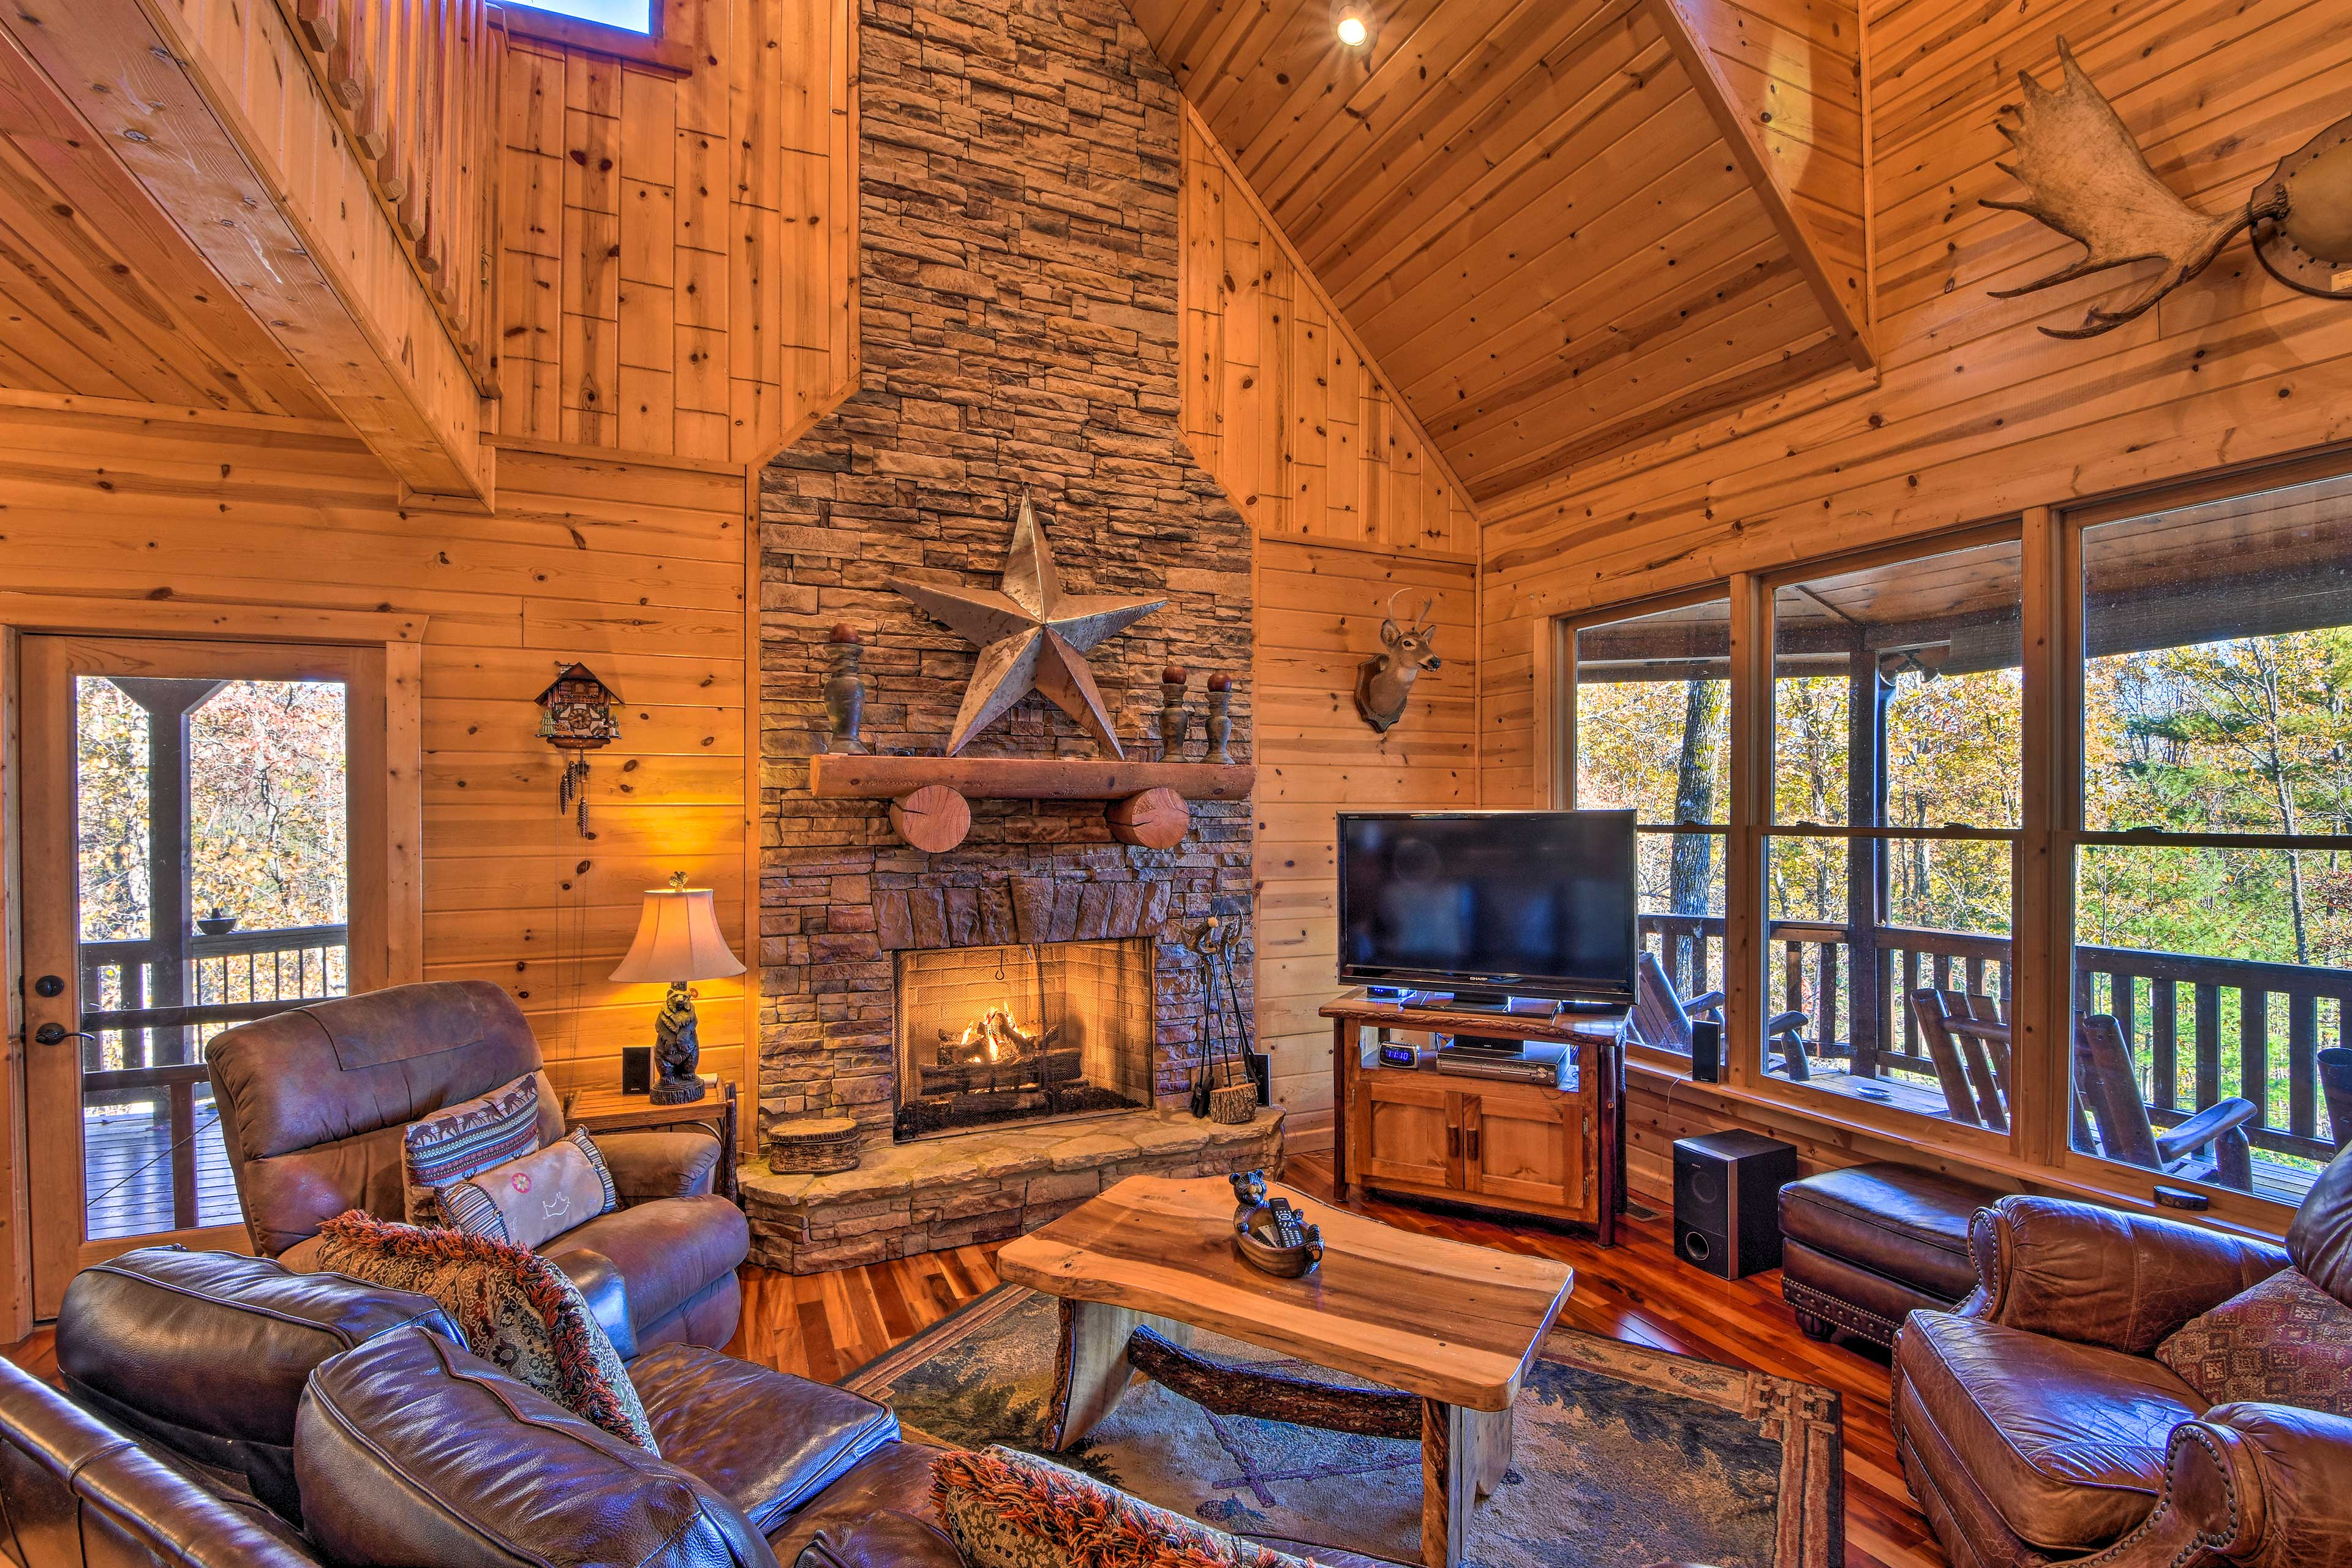 Curl up by the fire and watch your favorite movies on the flat-screen cable TV.